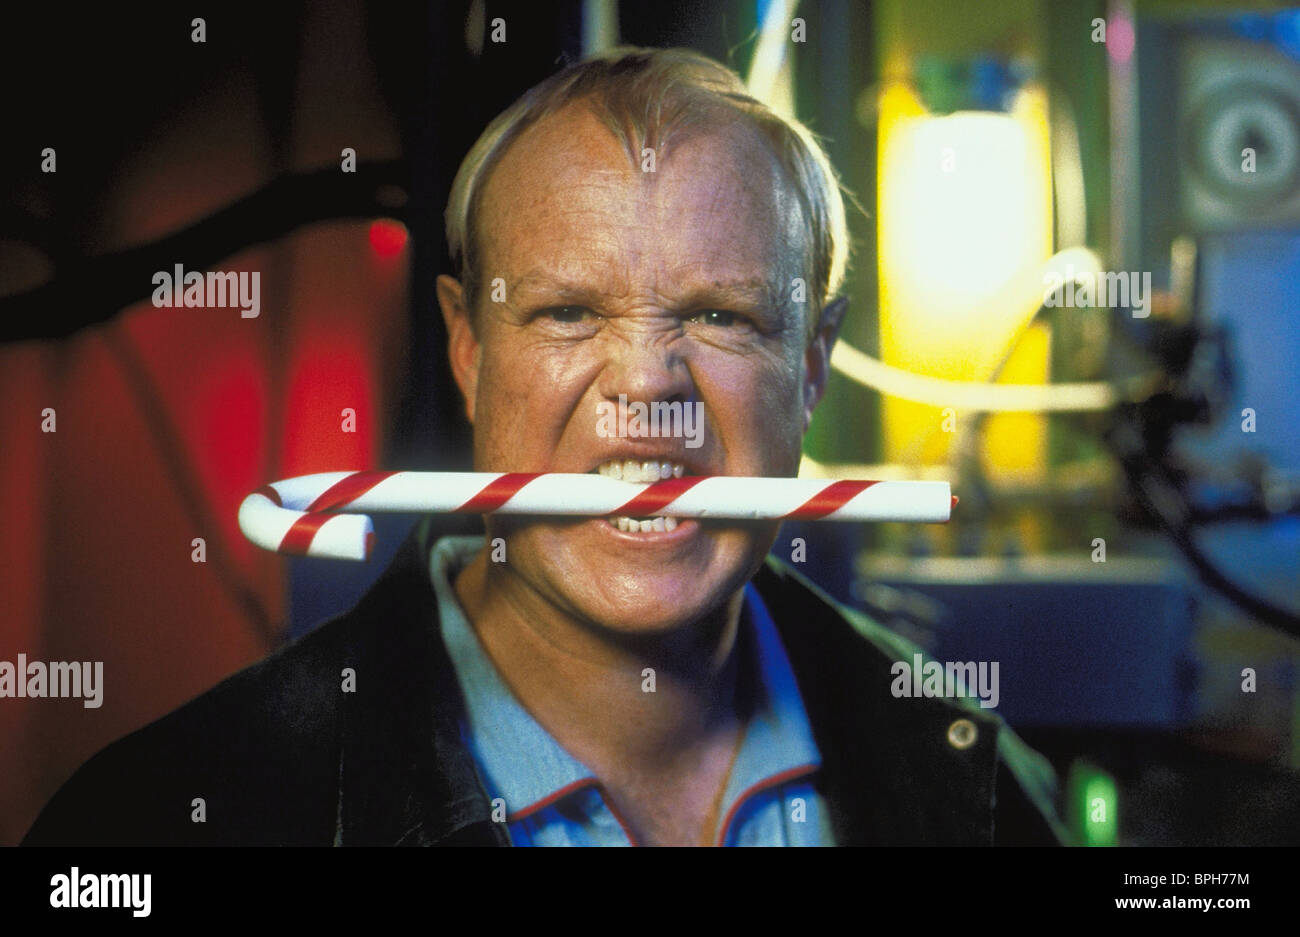 Ultimate Christmas Present.Bill Fagerbakke The Ultimate Christmas Present 2000 Stock